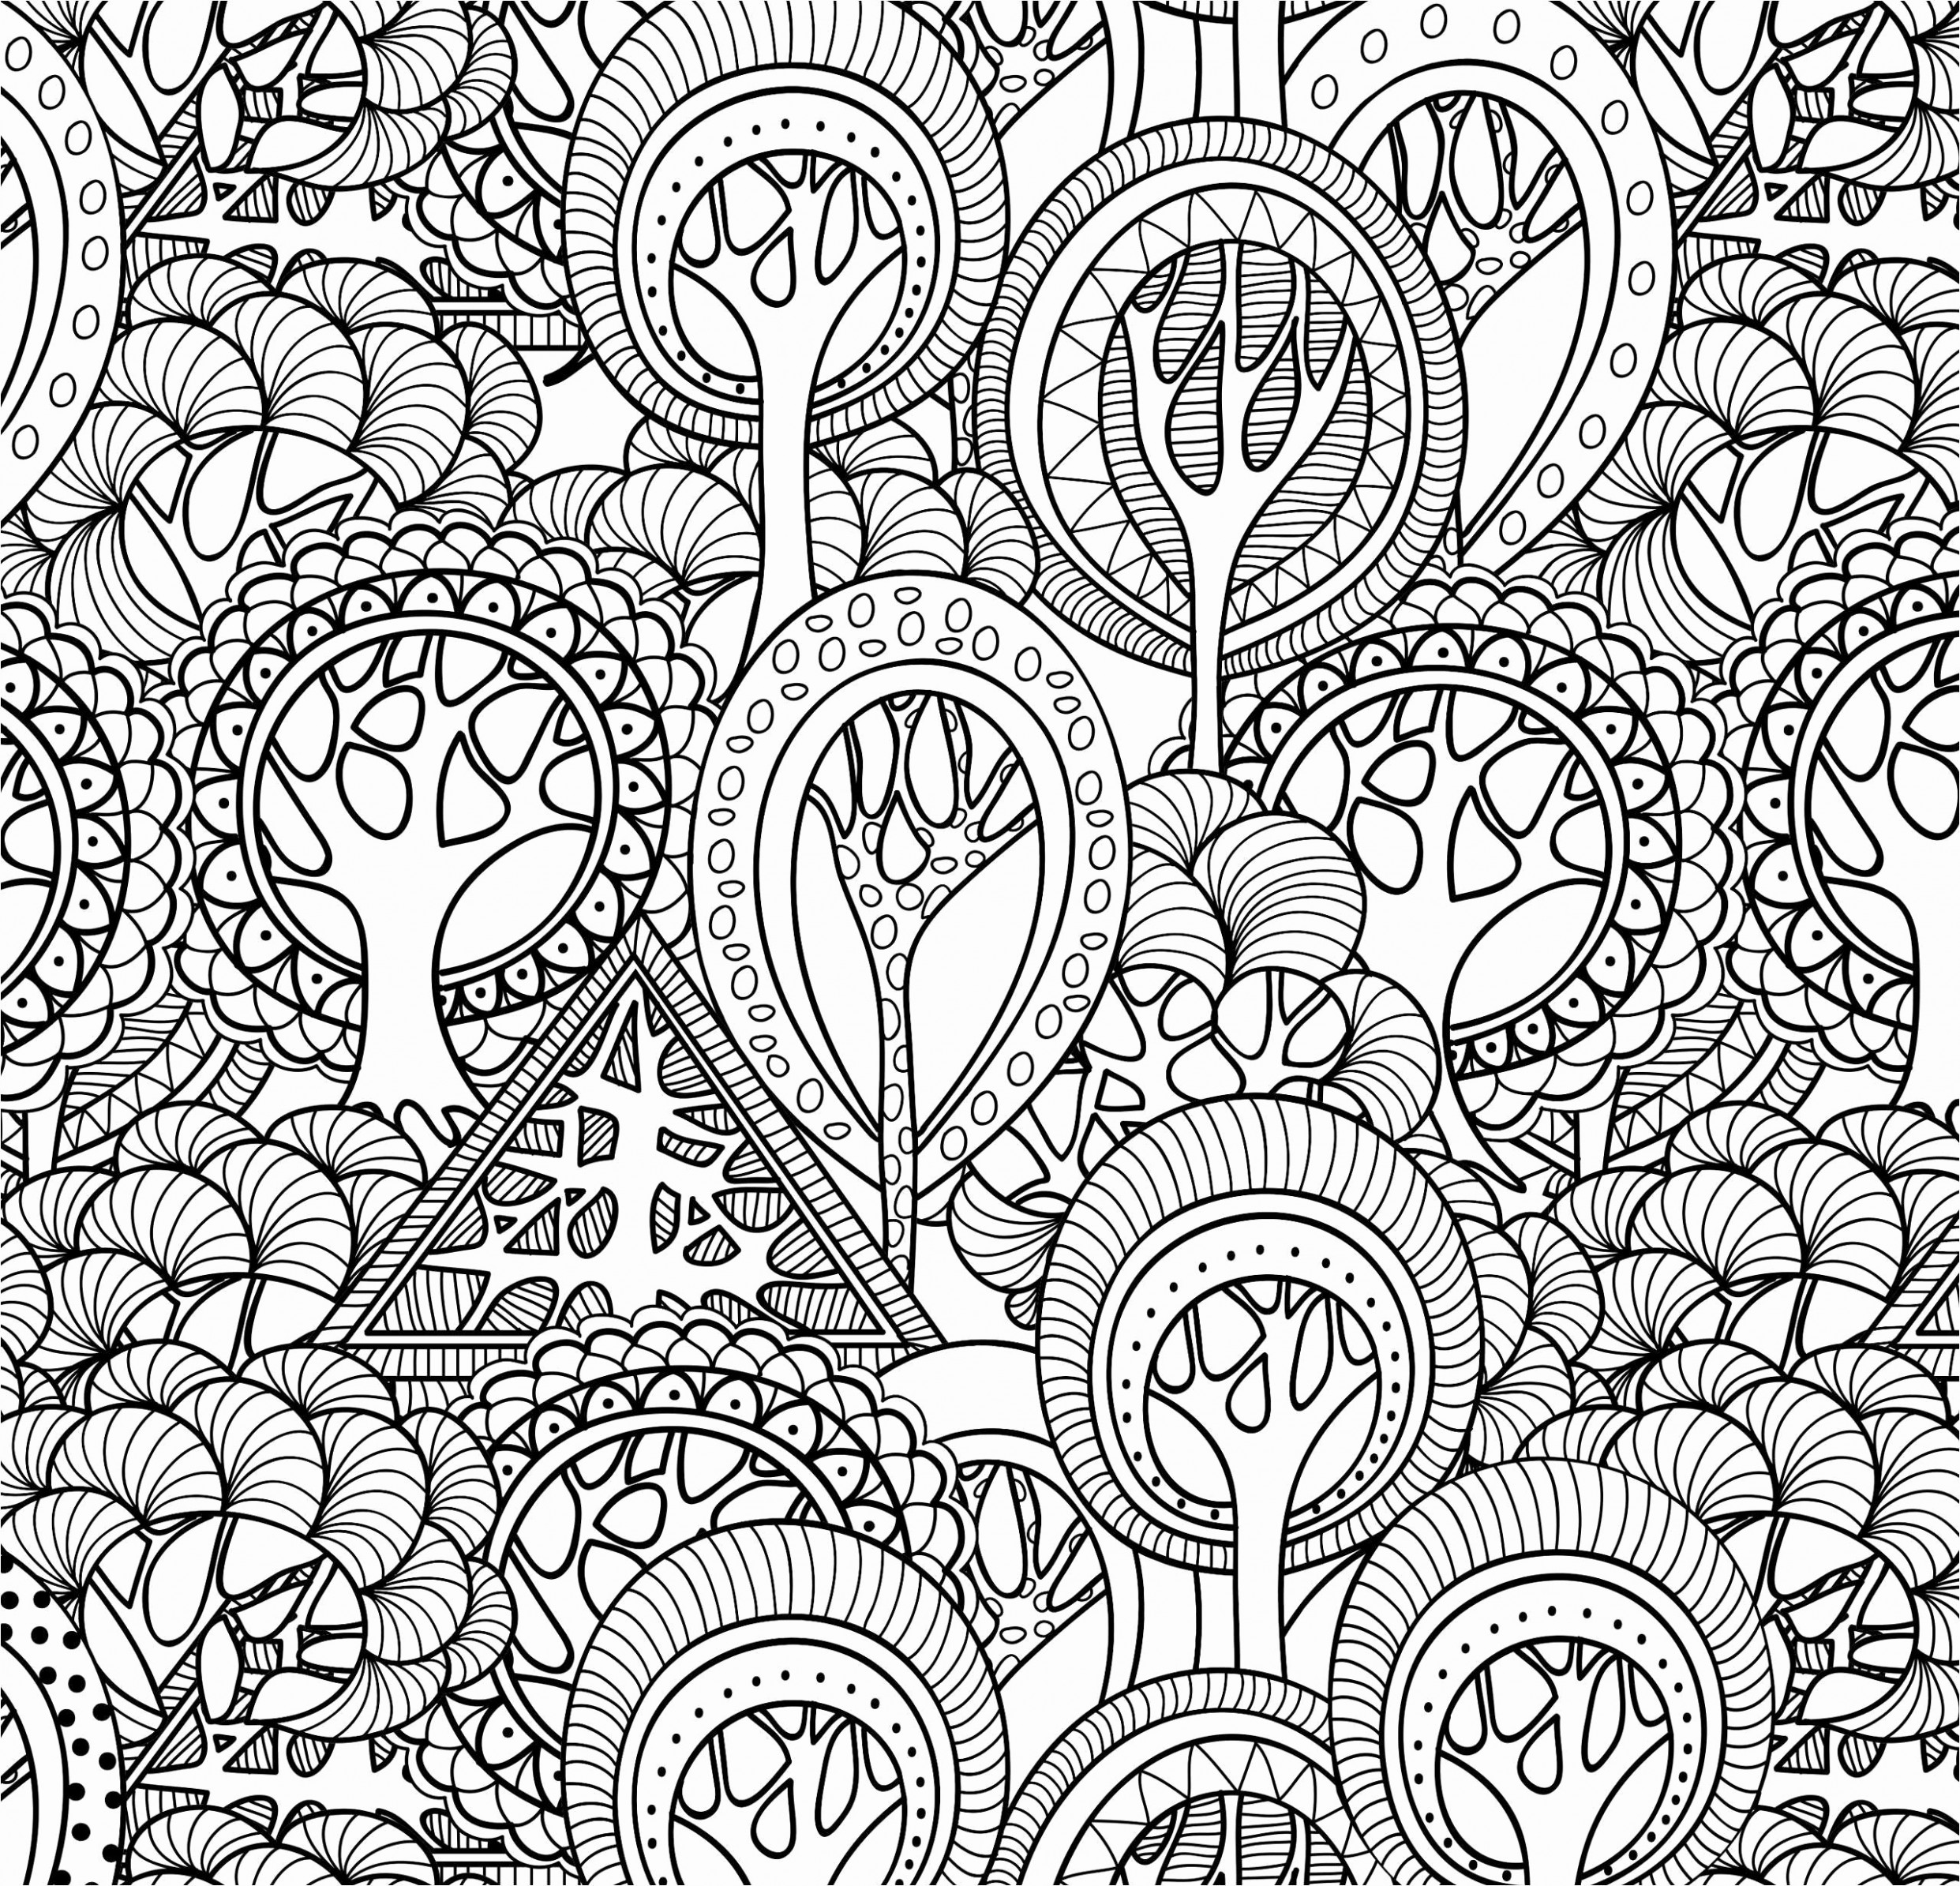 for | Chrismast and New Year - Part 14 - Christmas Coloring Pages For Elementary School